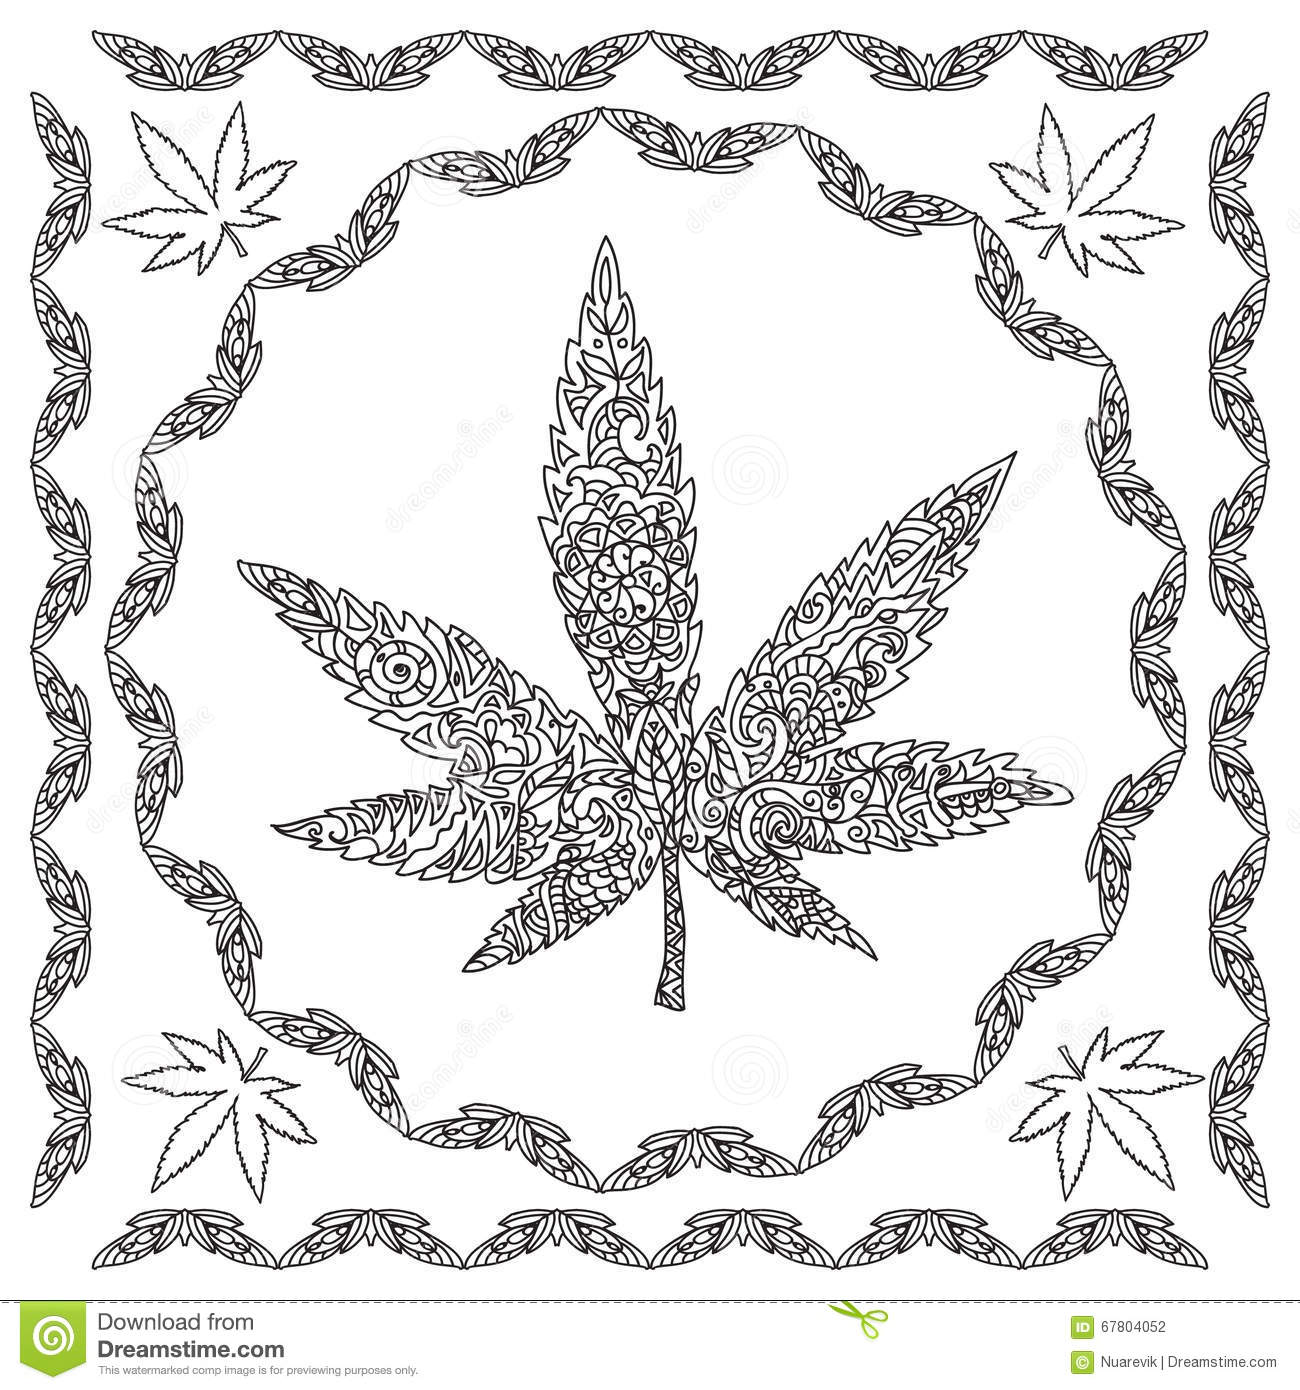 Cannabis coloring #18, Download drawings